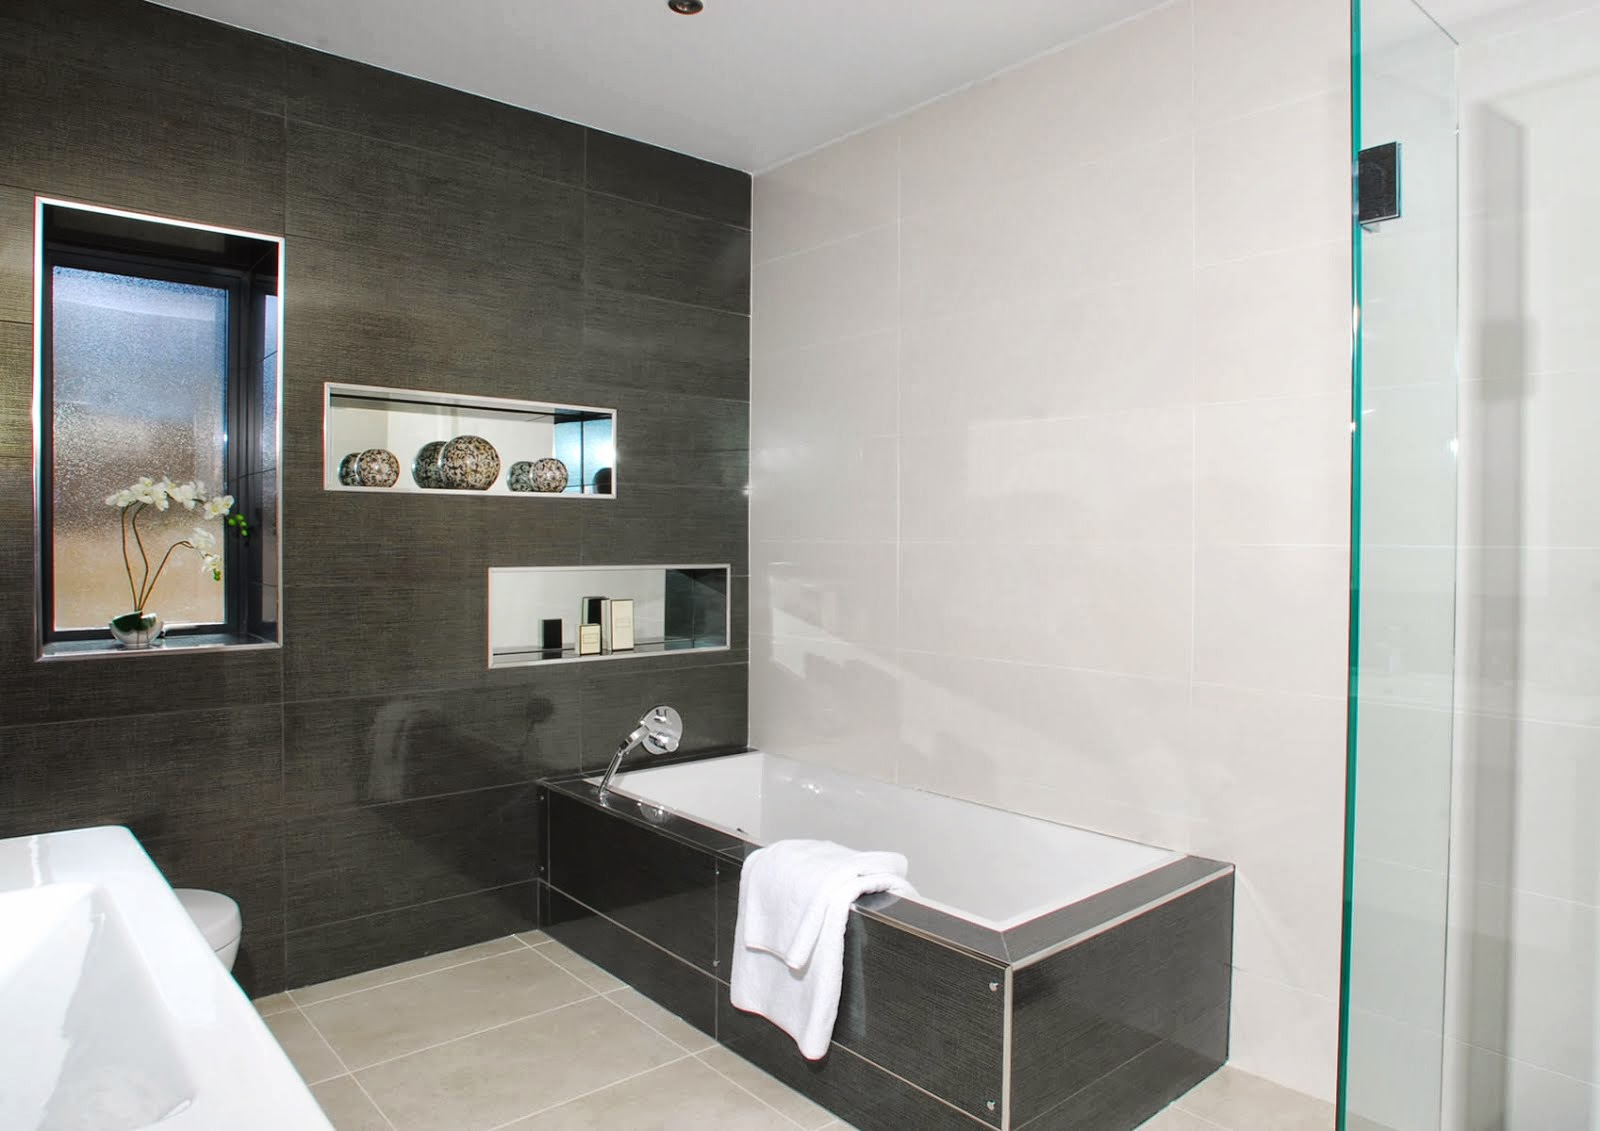 Bathroom design ideas uk for Bathroom ideas design